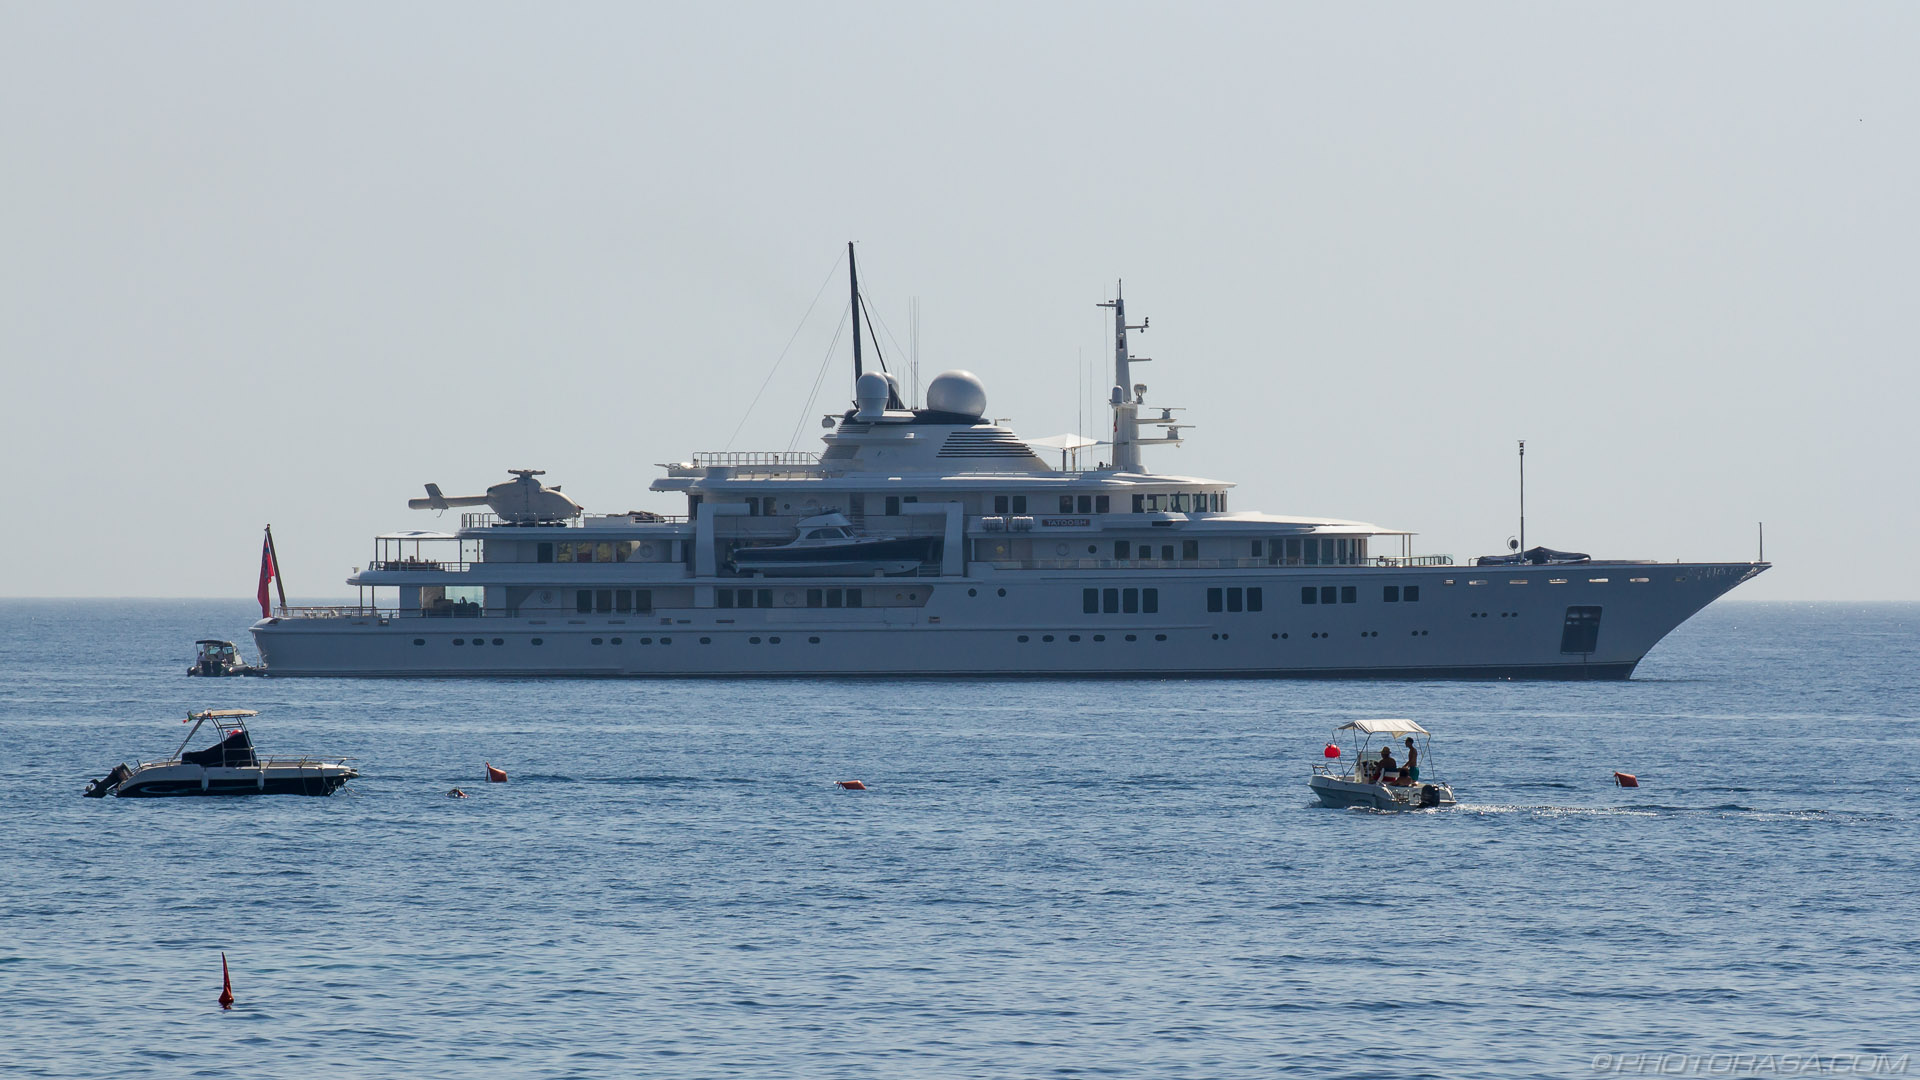 http://photorasa.com/giardini-naxos/tatoosh-super-yacht/